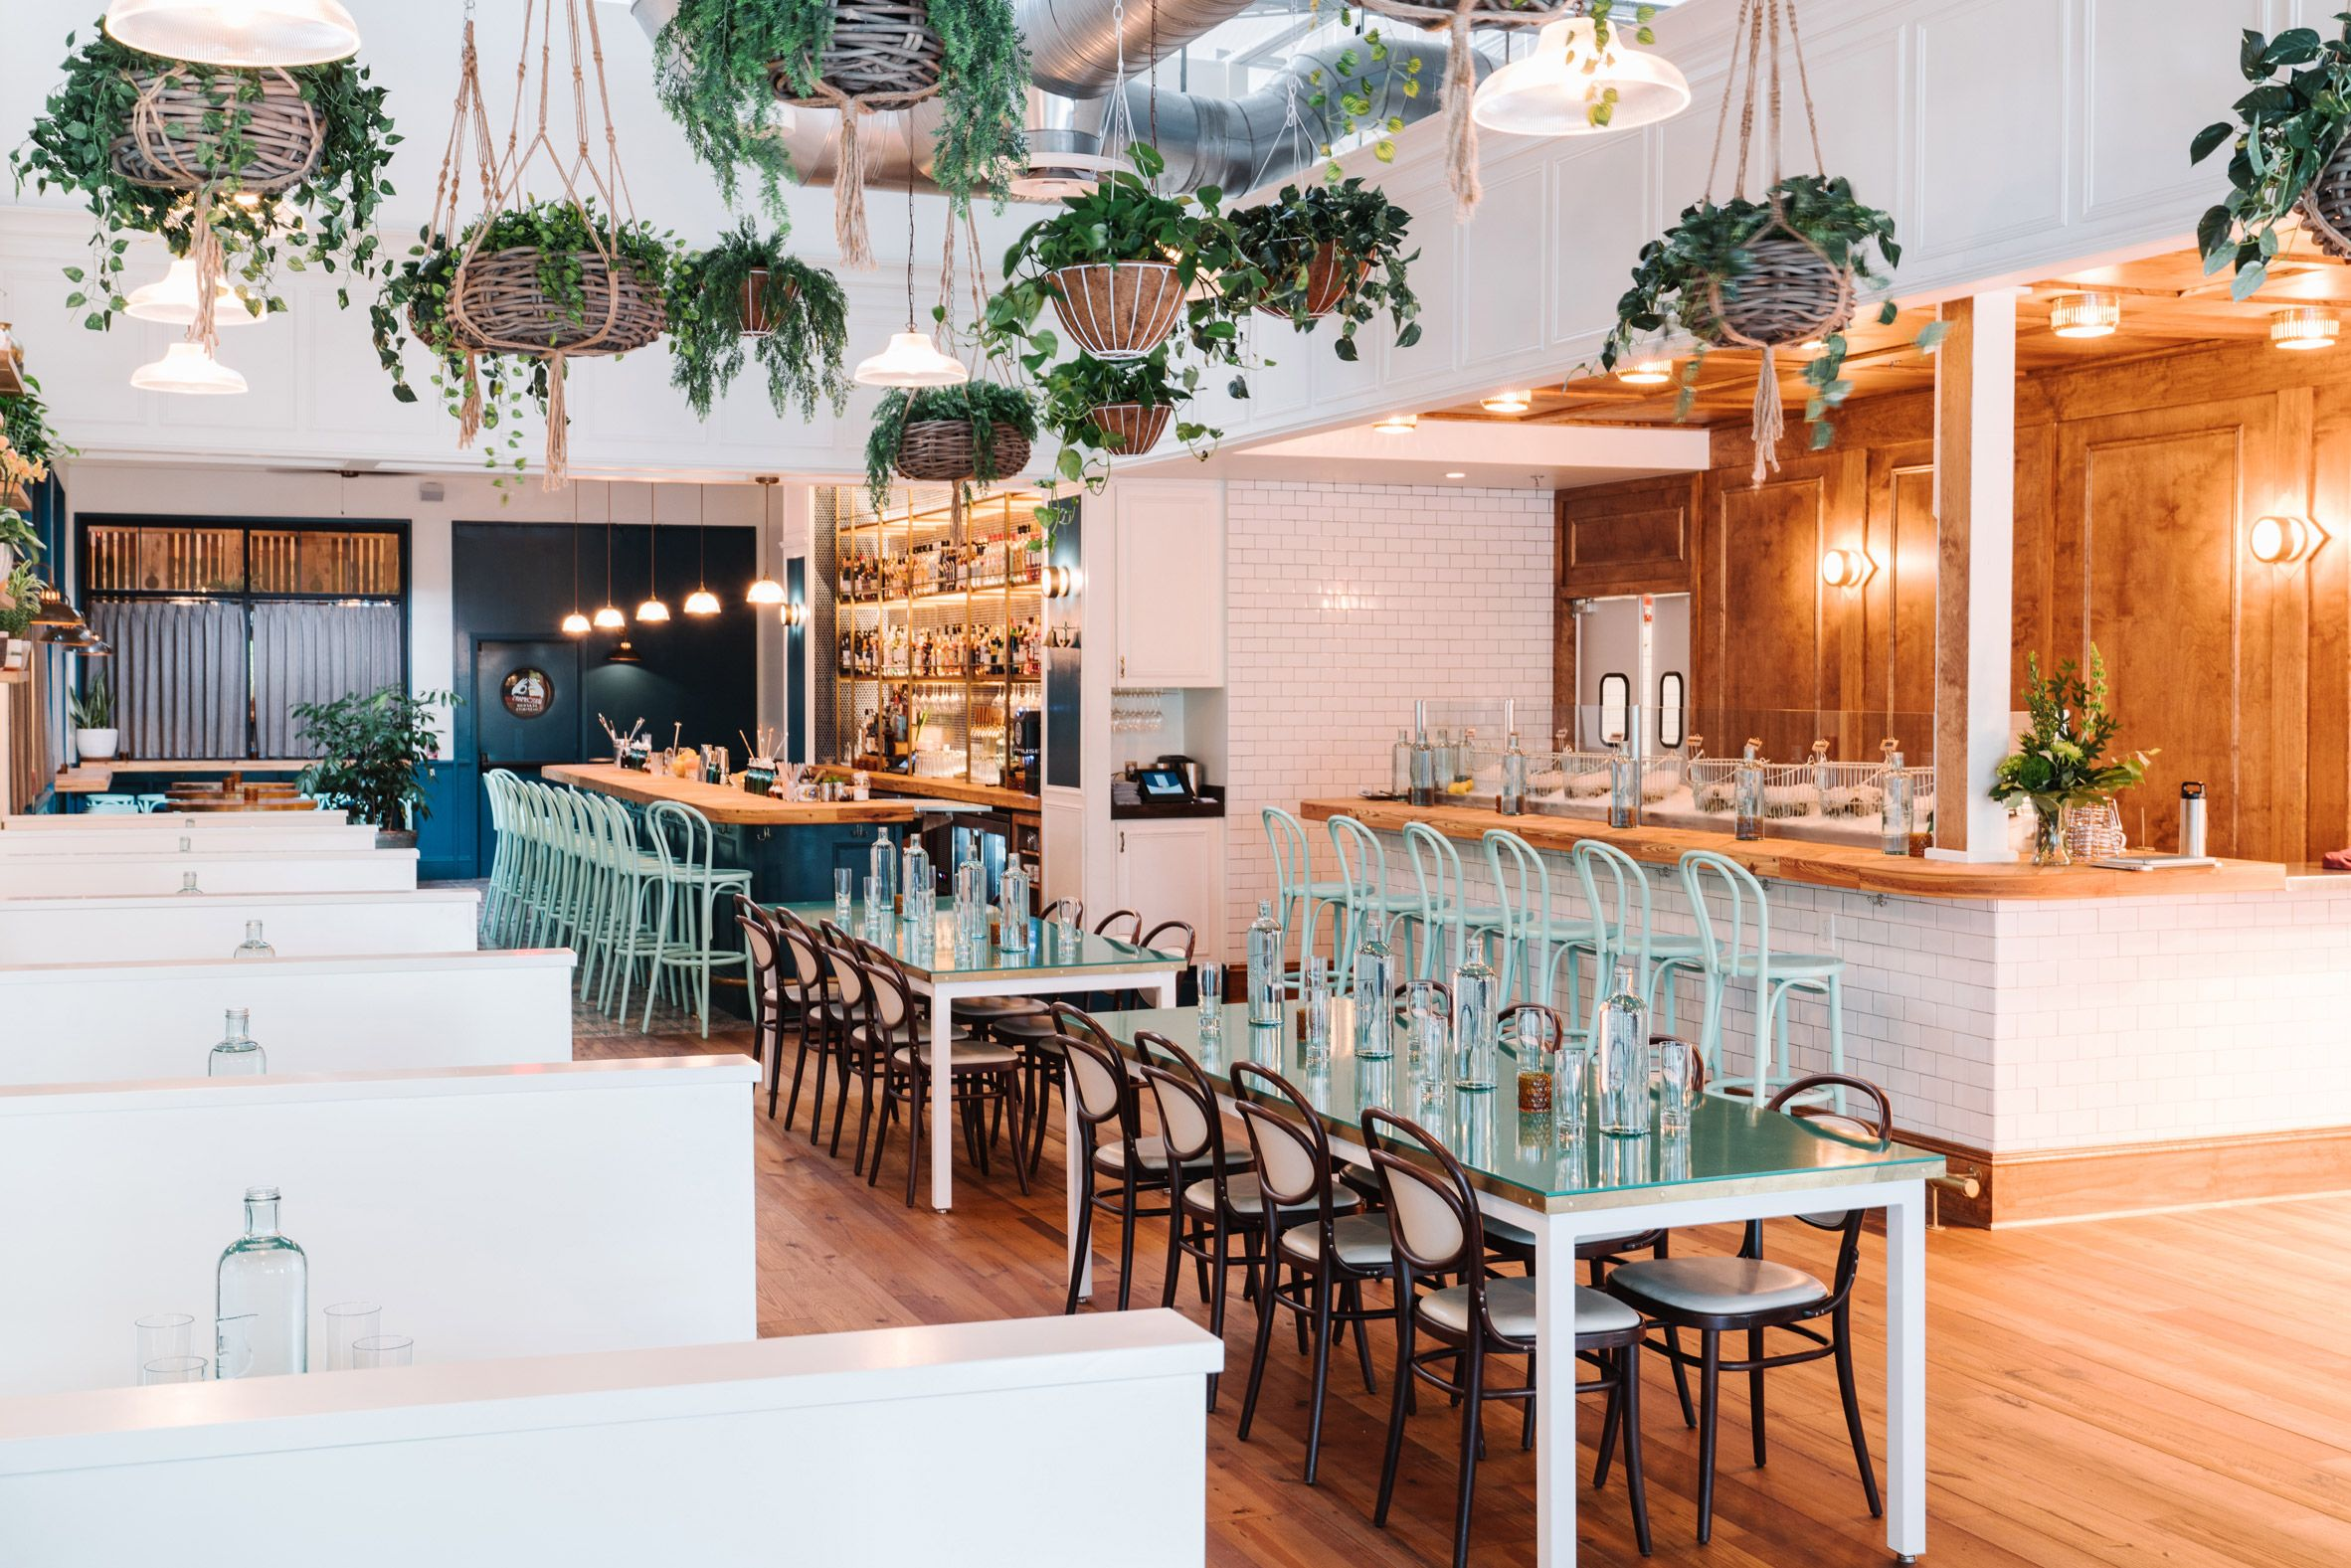 Square Feet Studio Opts For Spare Nautical Interior At Atlanta Oyster Bar American Firm